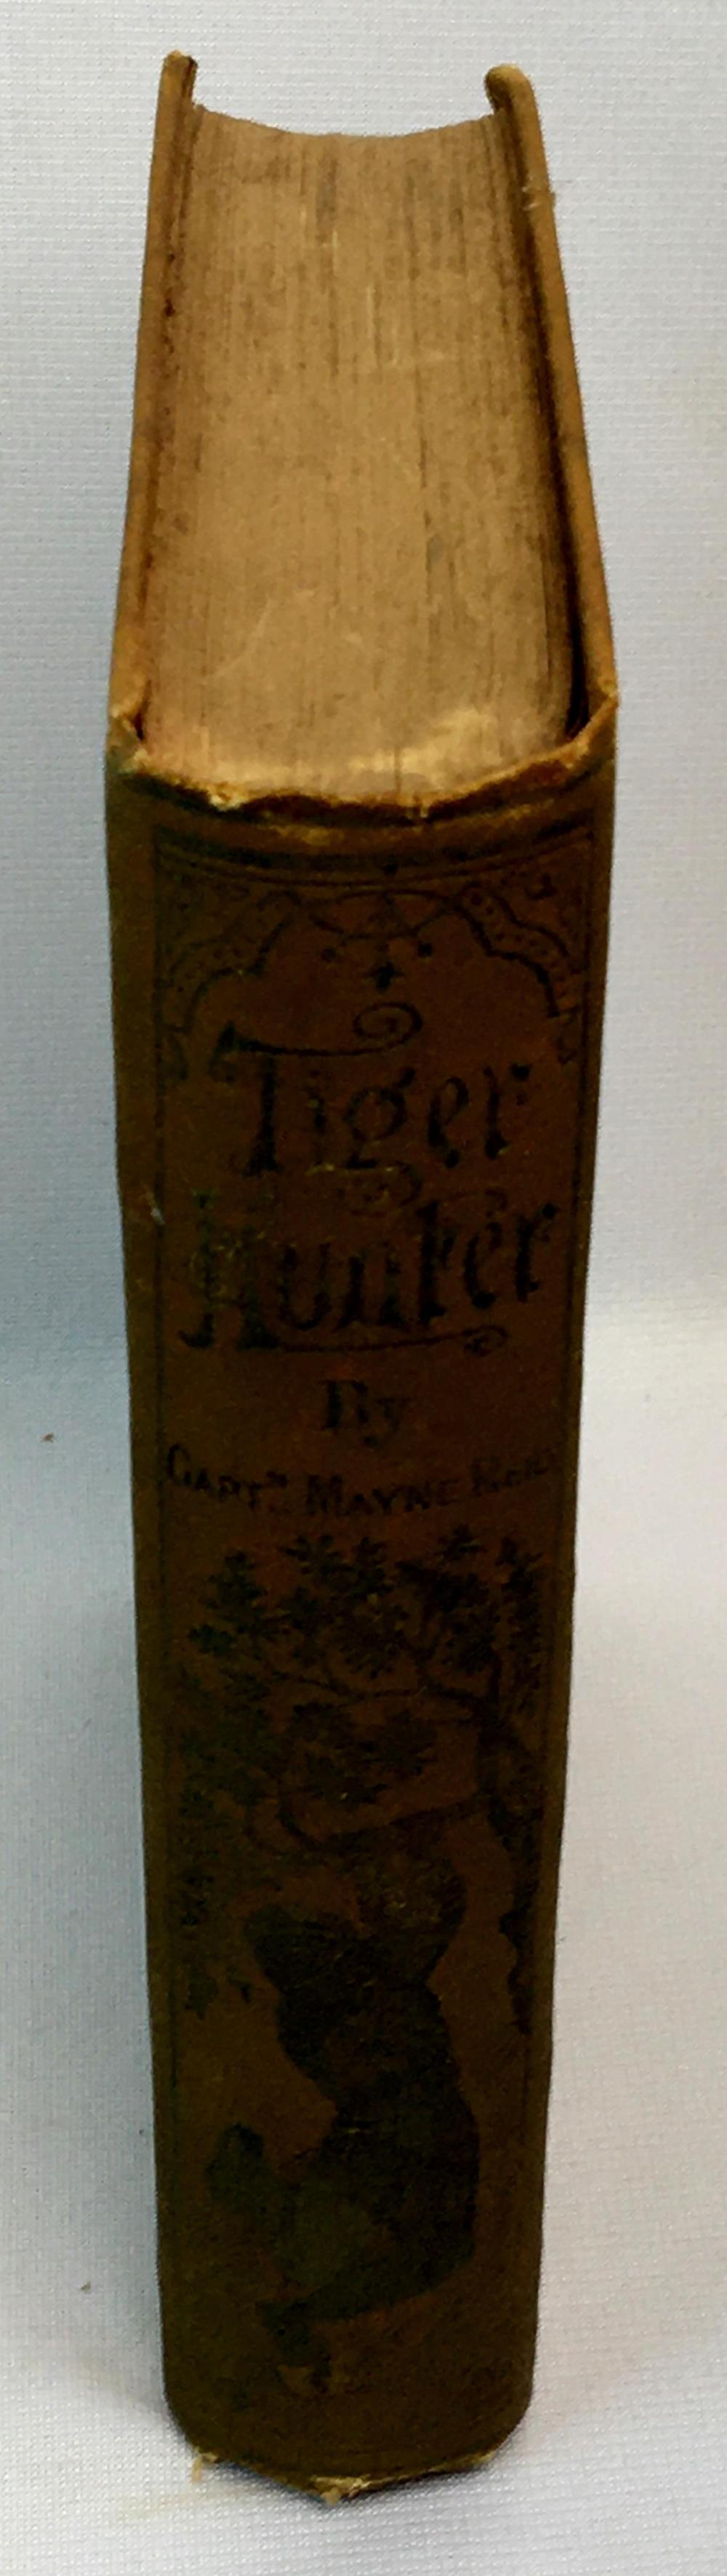 1883 The Tiger Hunter; or A Hero in Spite of Himself by Capt. Mayne Reid